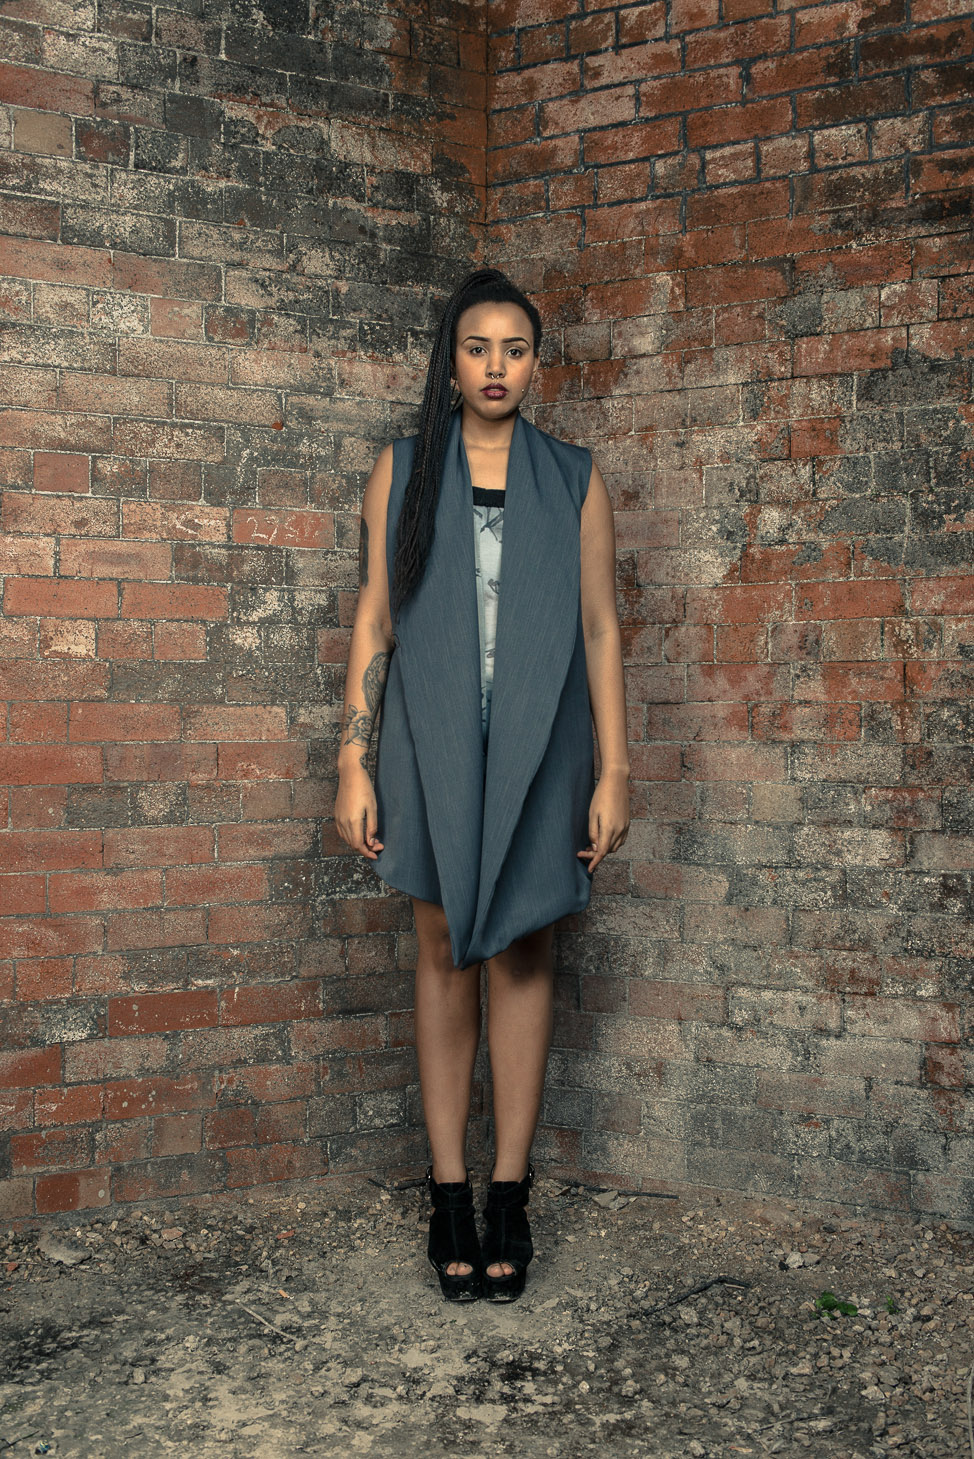 zaramia-ava-zaramiaava-leeds-fashion-designer-ethical-sustainable-tailored-minimalist-dress-jacket-versatile-drape-grey-bodysuit-black-obi-belt-wrap-cowl-styling-womenswear-models-photoshoot-27